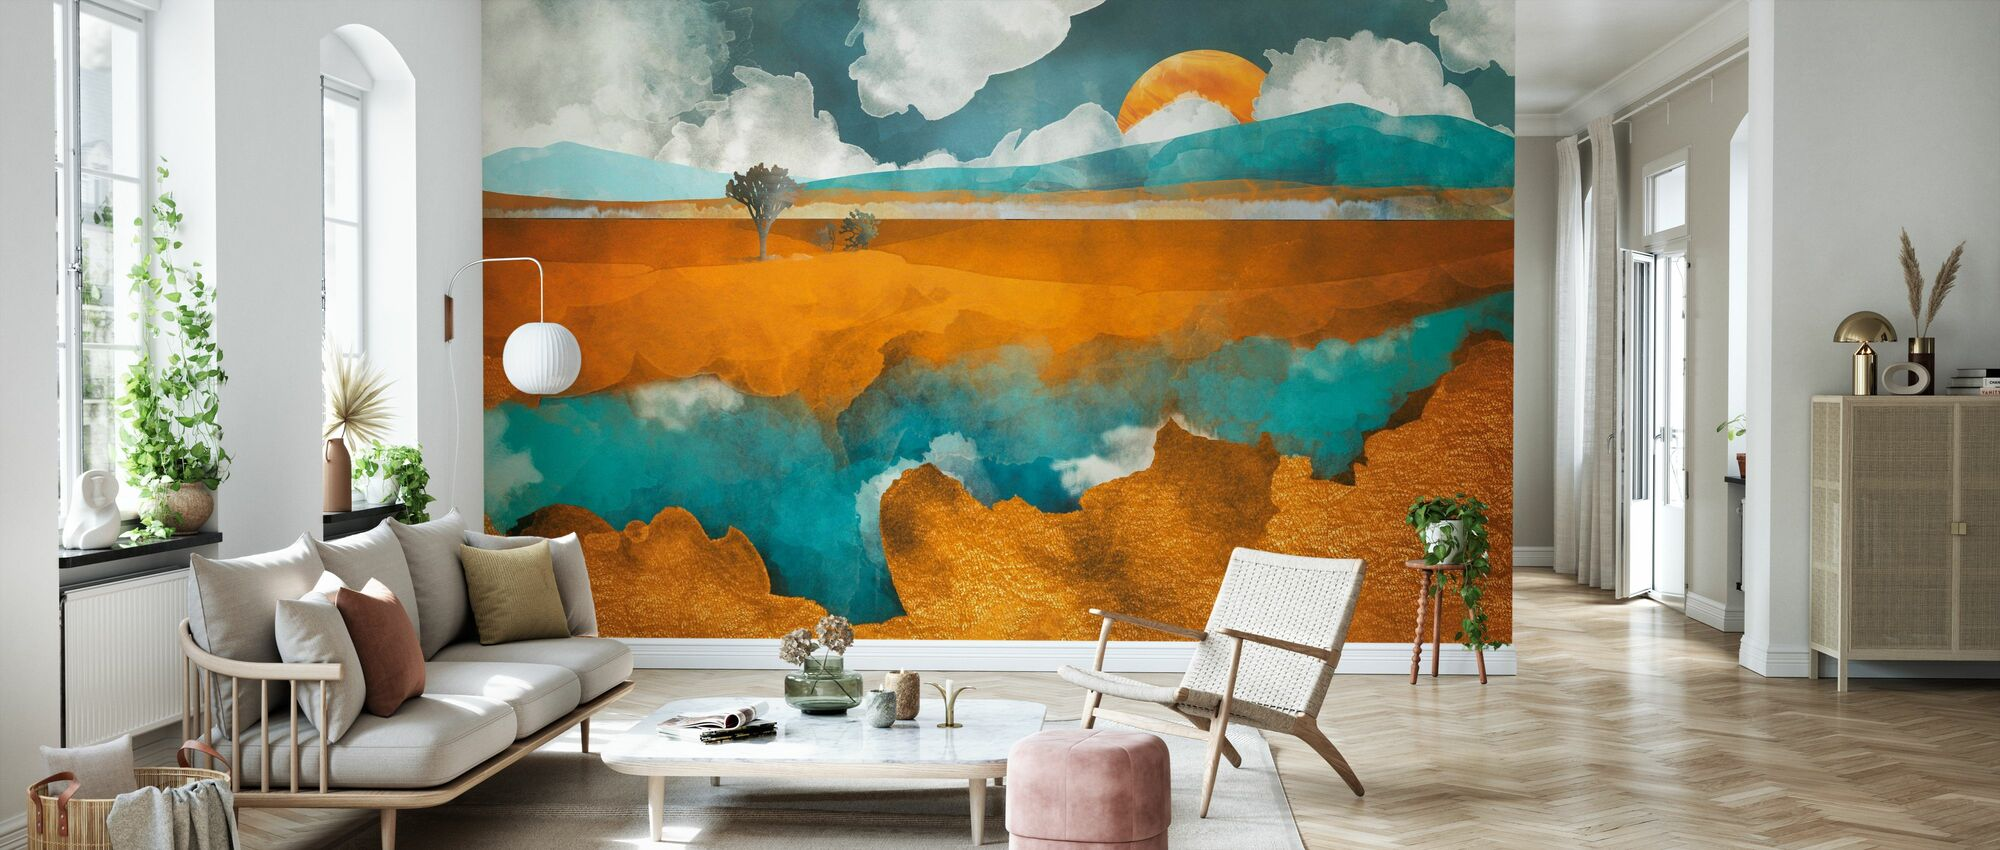 Desert River - SpaceFrogDesigns - Wallpaper - Living Room